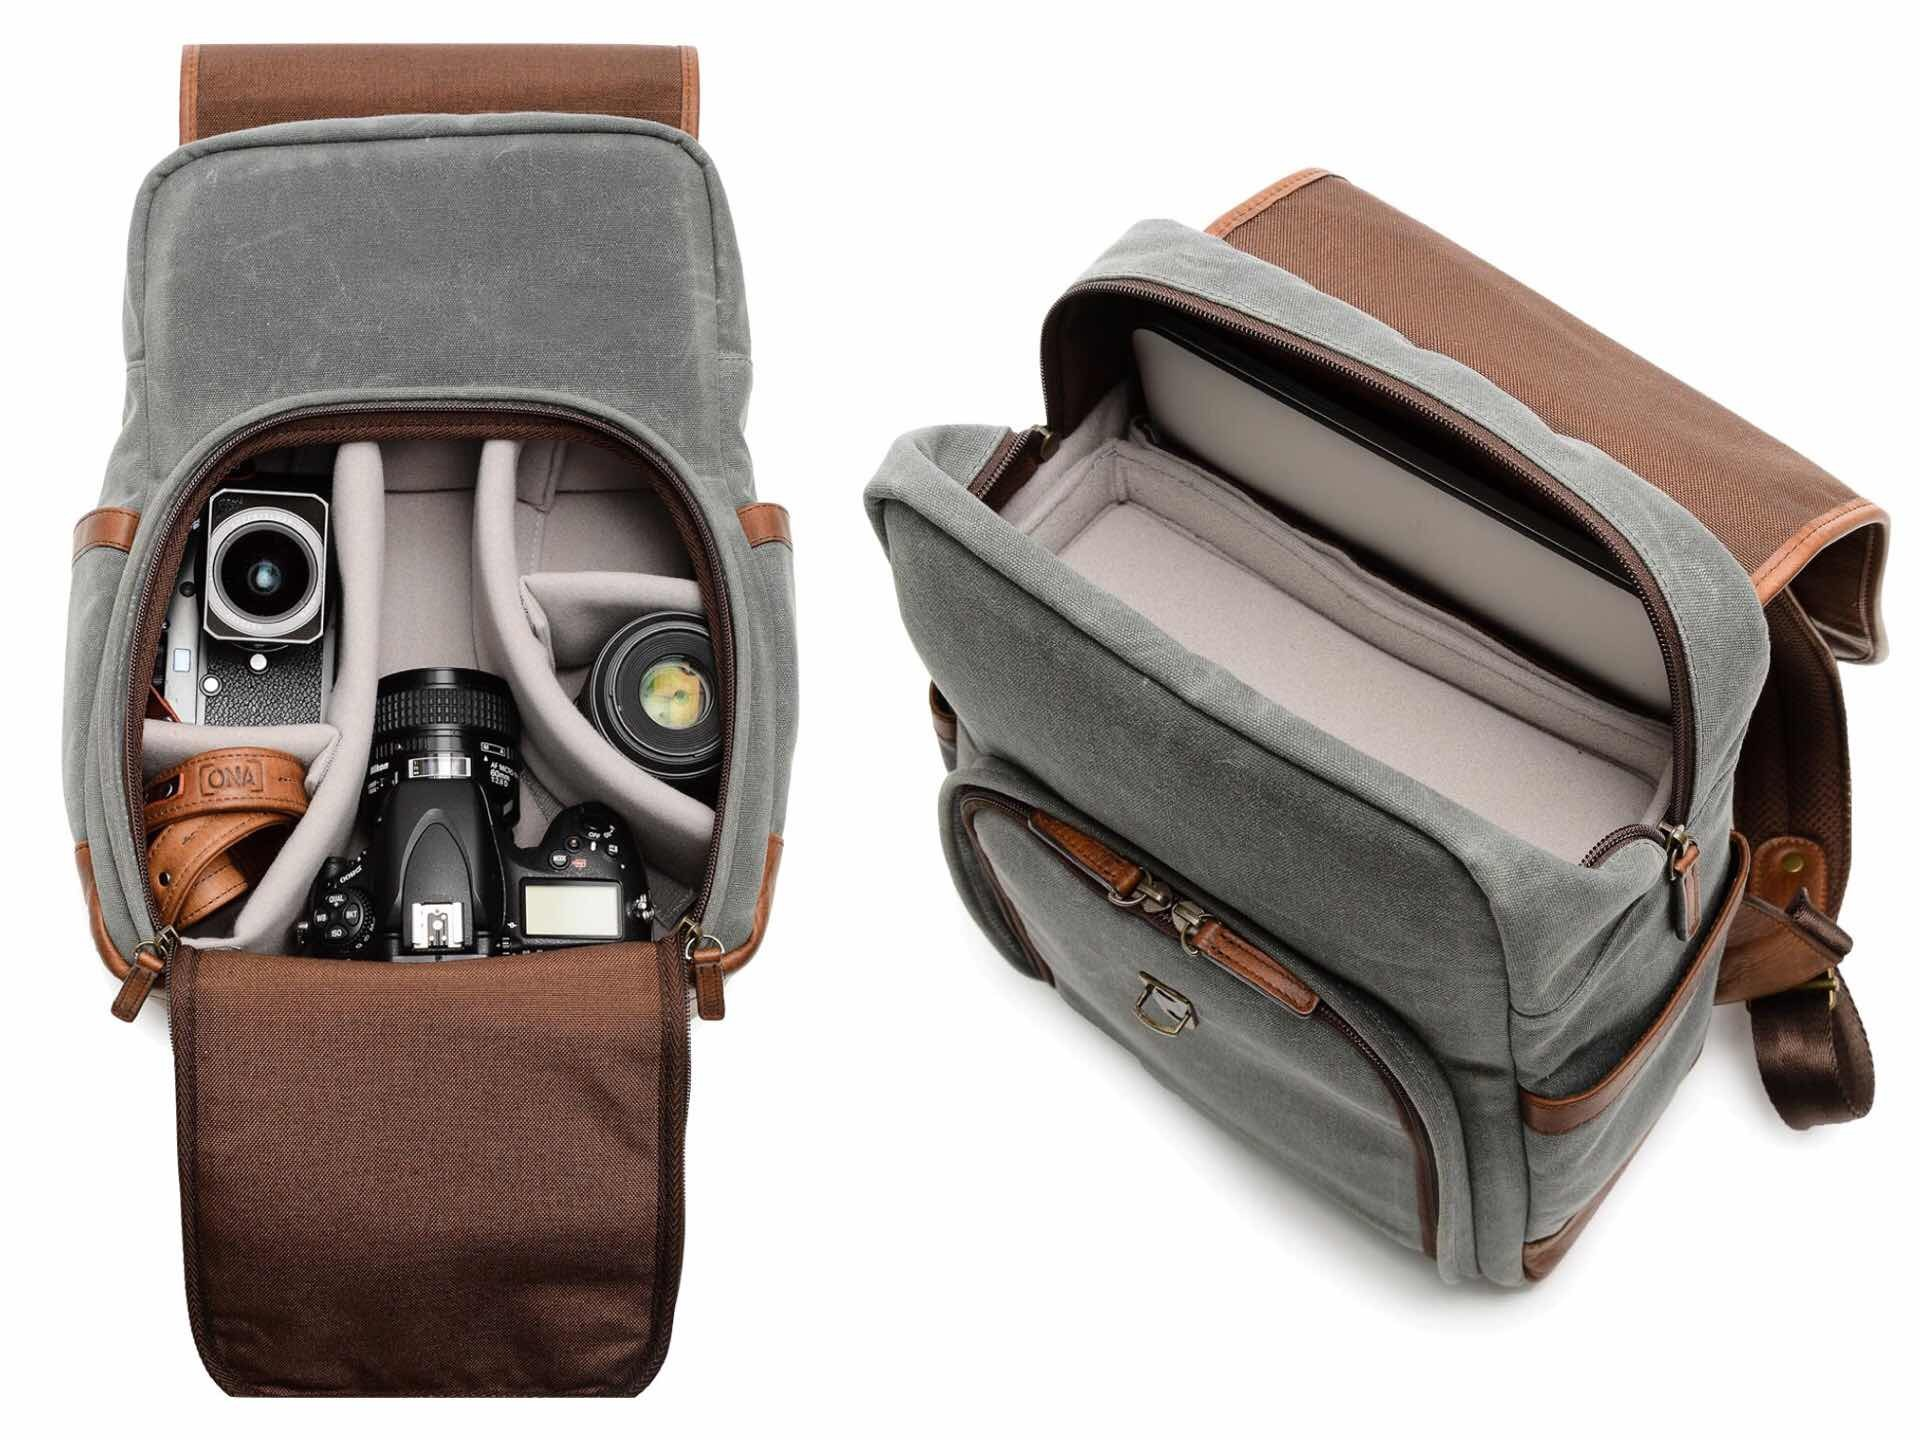 ona-monterey-backpack-interior-compartments